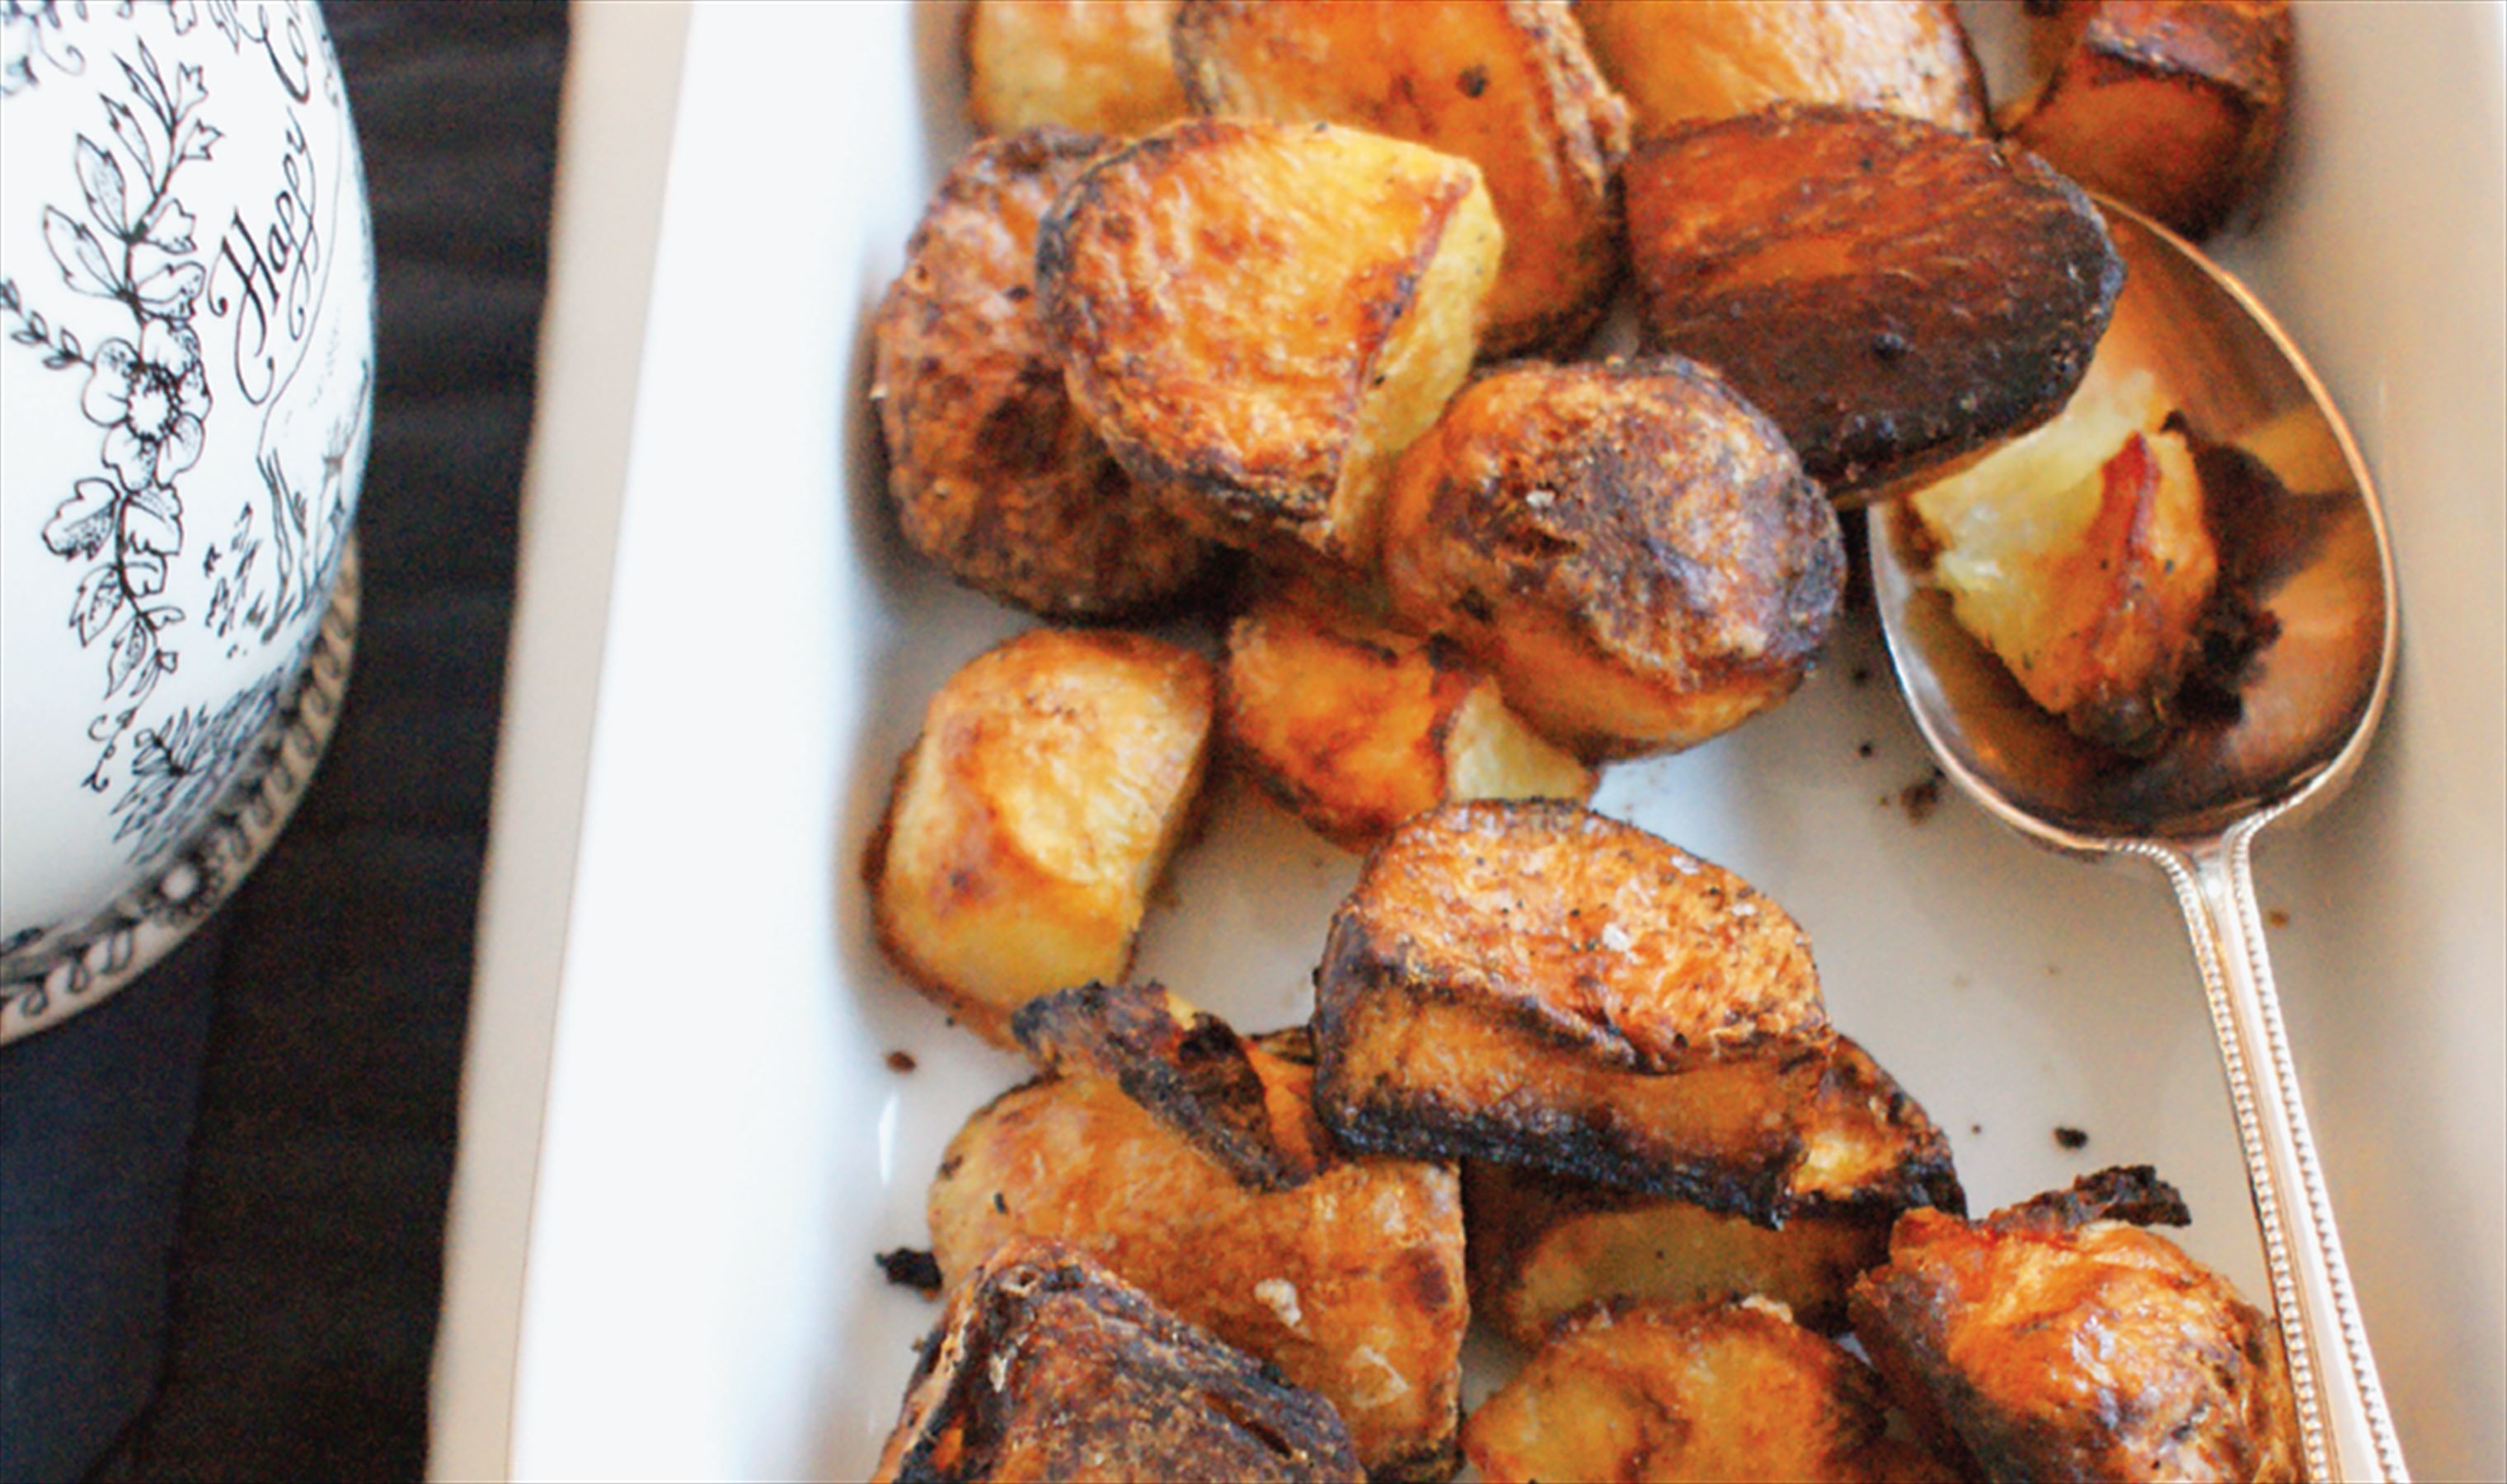 Ingrid's roast potatoes